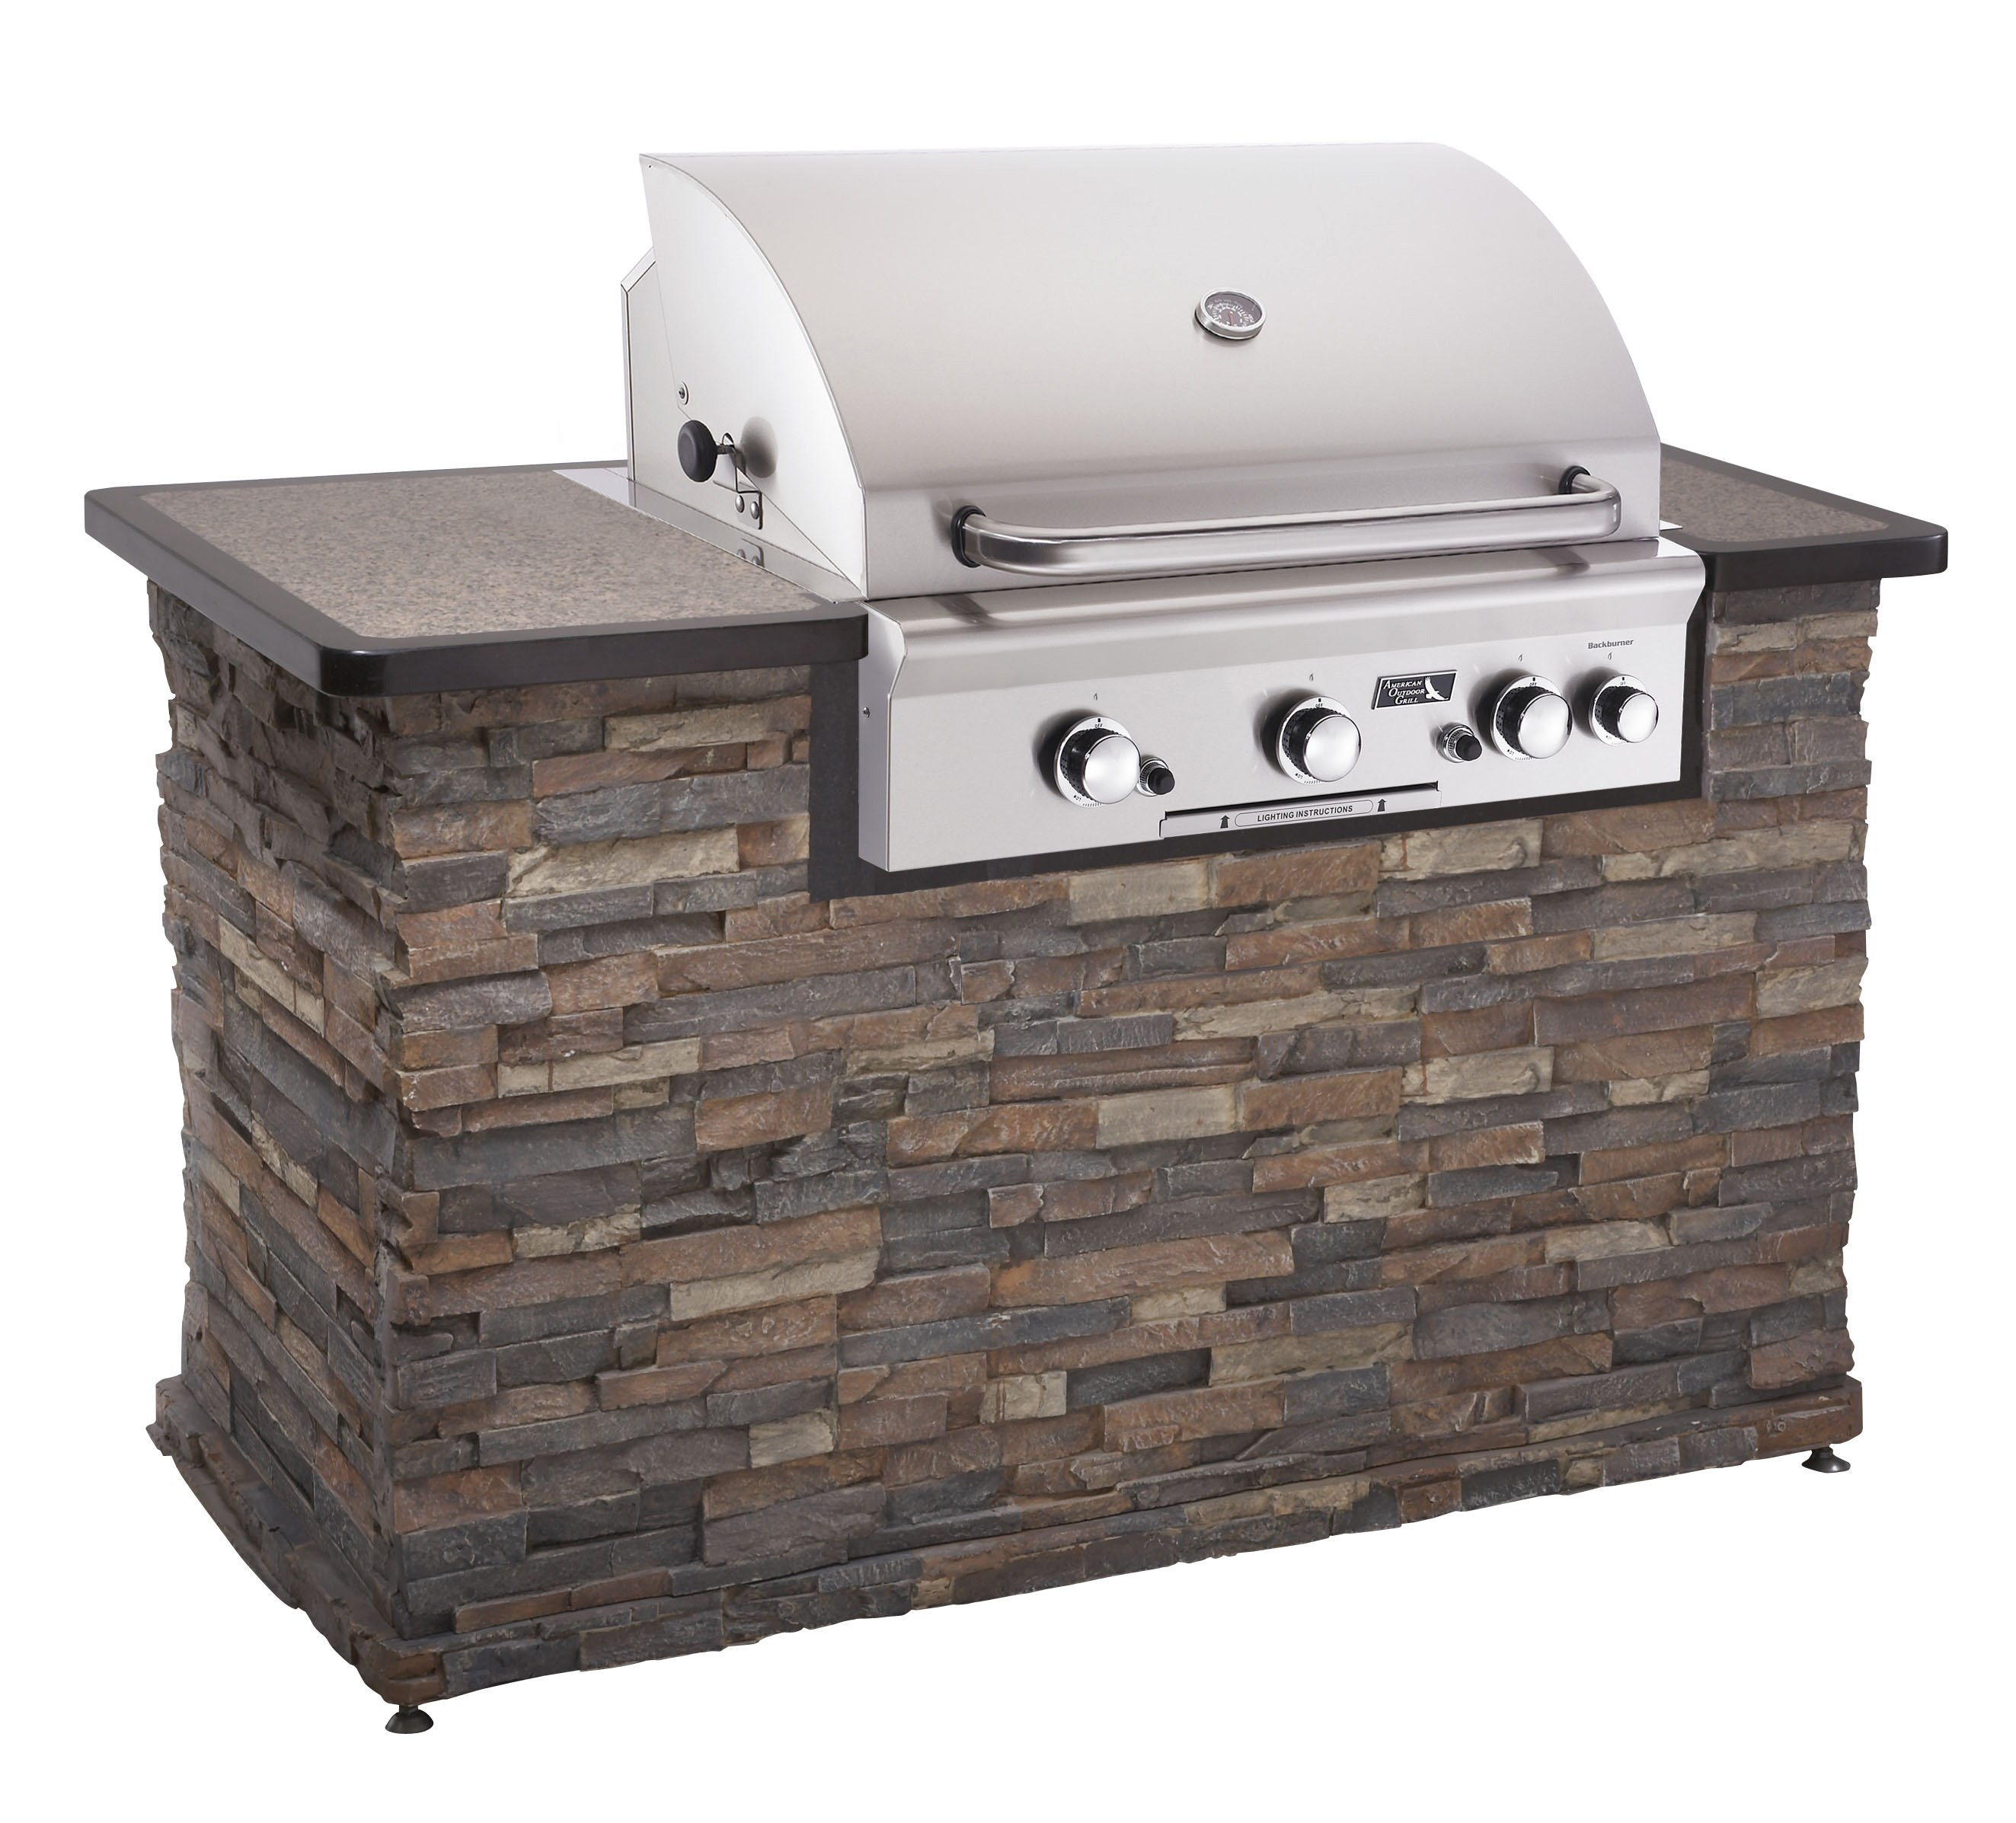 Outdoor Gas Grills ~ Gas outdoor grills built in kitchen car interior